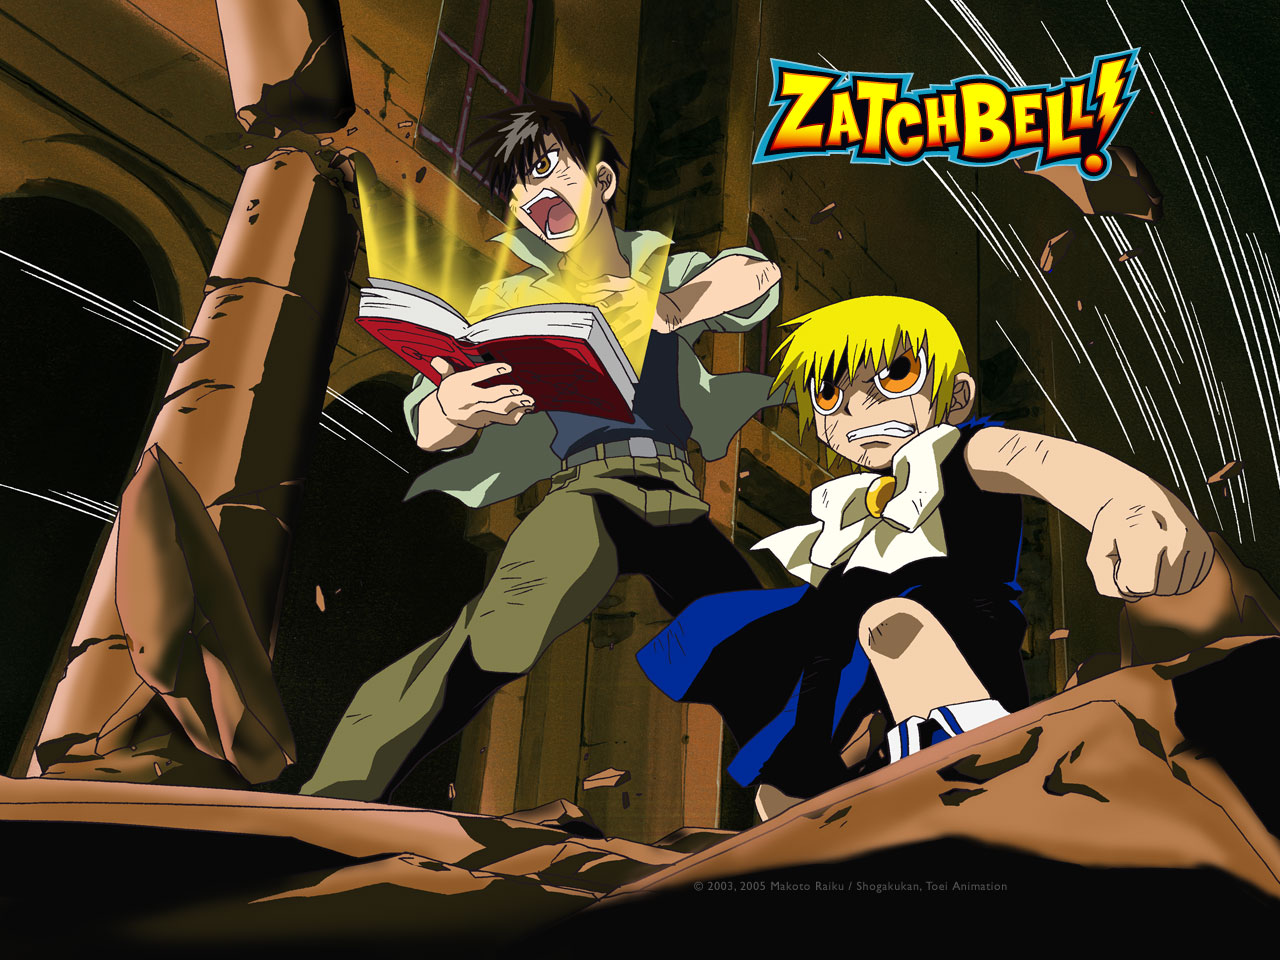 http://3.bp.blogspot.com/_AcBUSVxs82w/TPcdYzM0oKI/AAAAAAAAji4/hUkCnGvqC-k/s1600/Zatch_Bell_Cartoon_Wallpapers.jpg